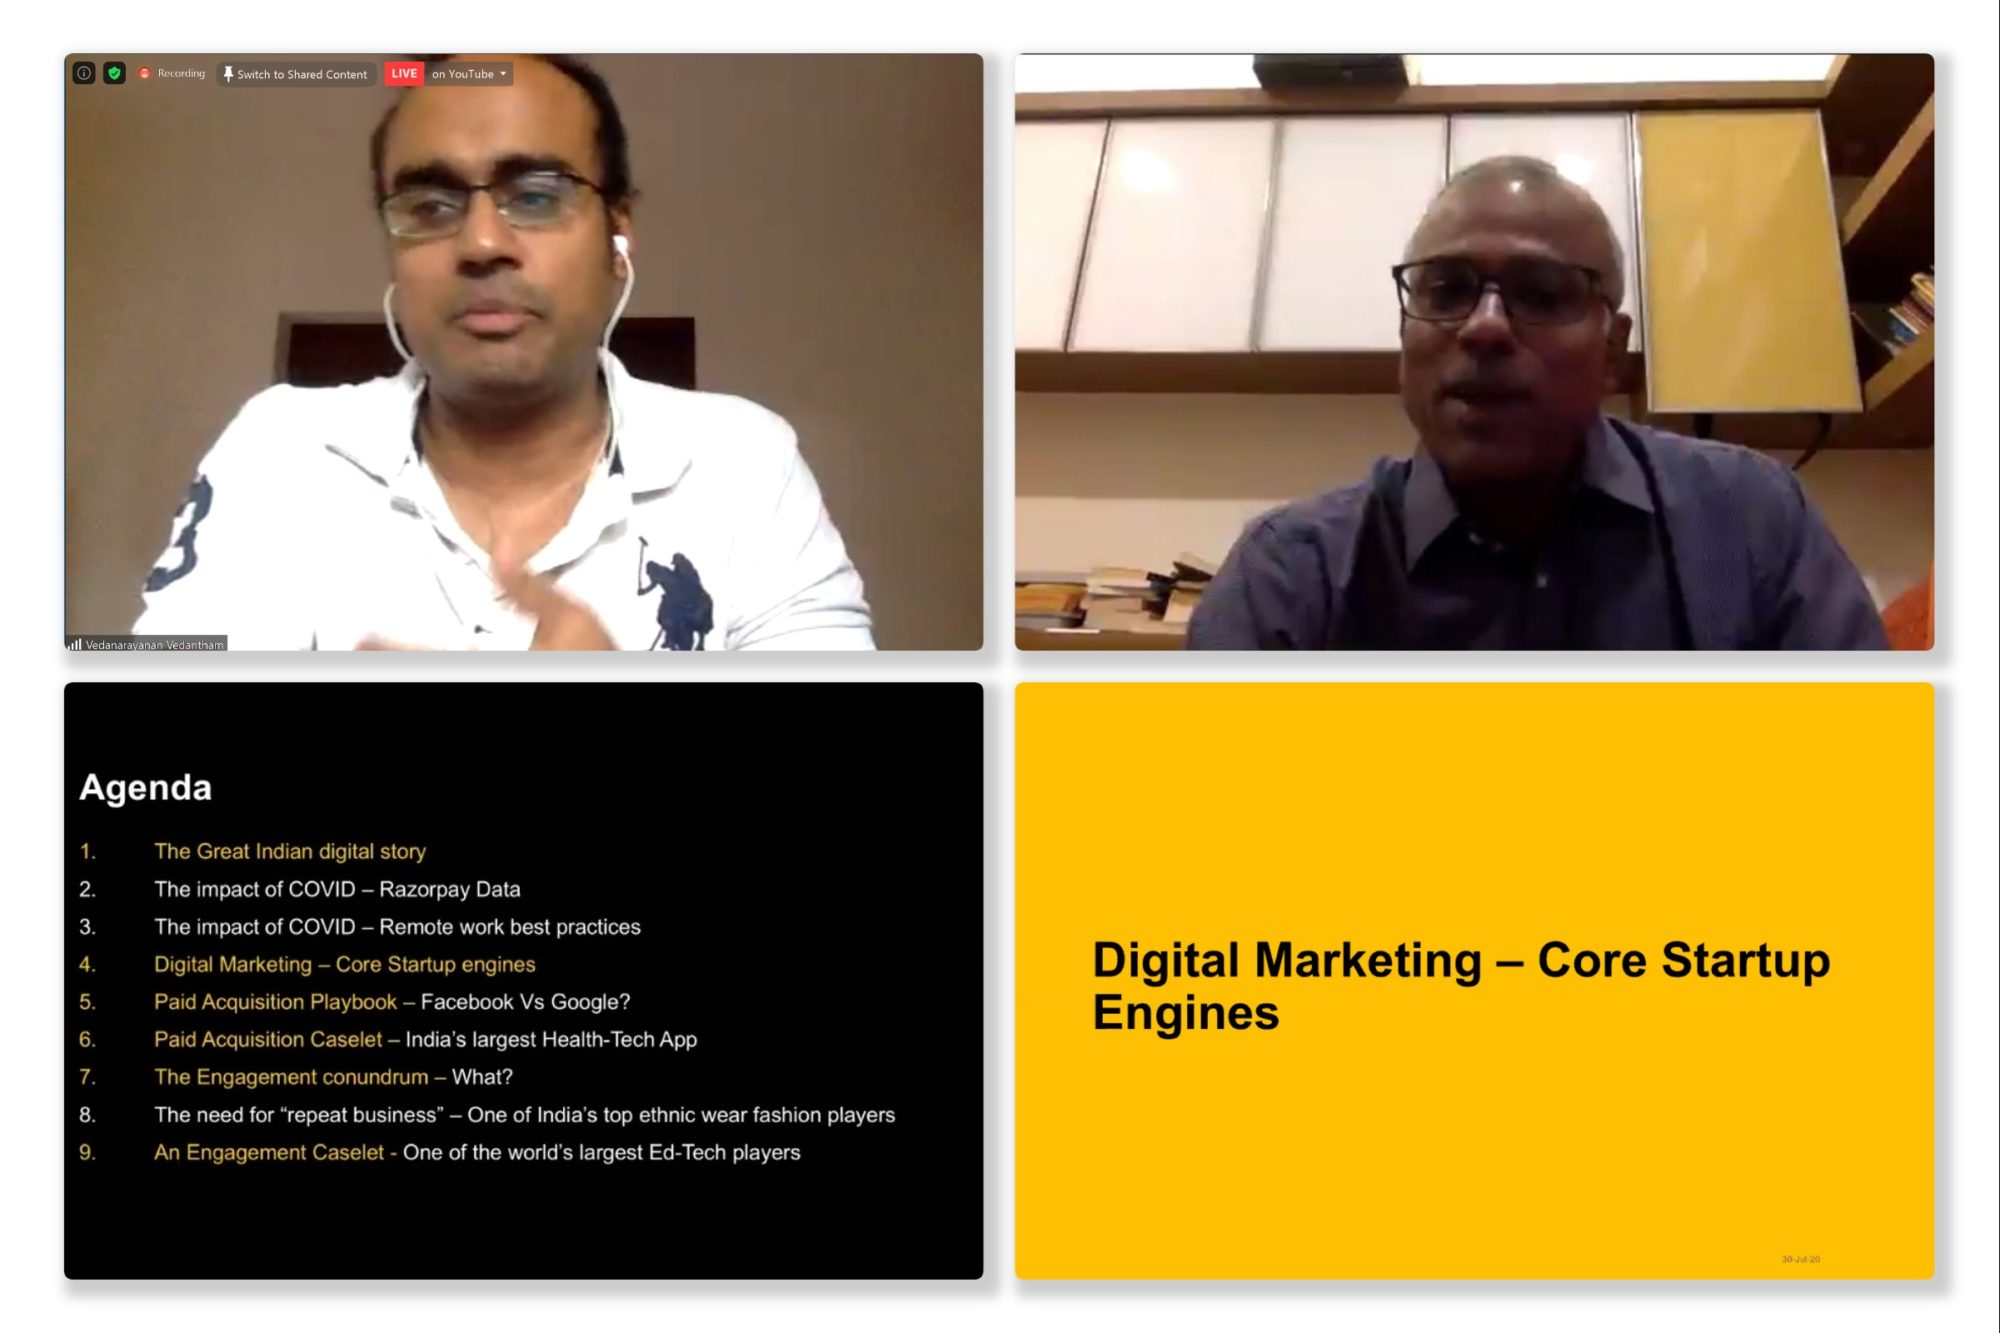 Digital Marketing Playbooks for Early Stage Startups by Vedanarayanan Vedantham